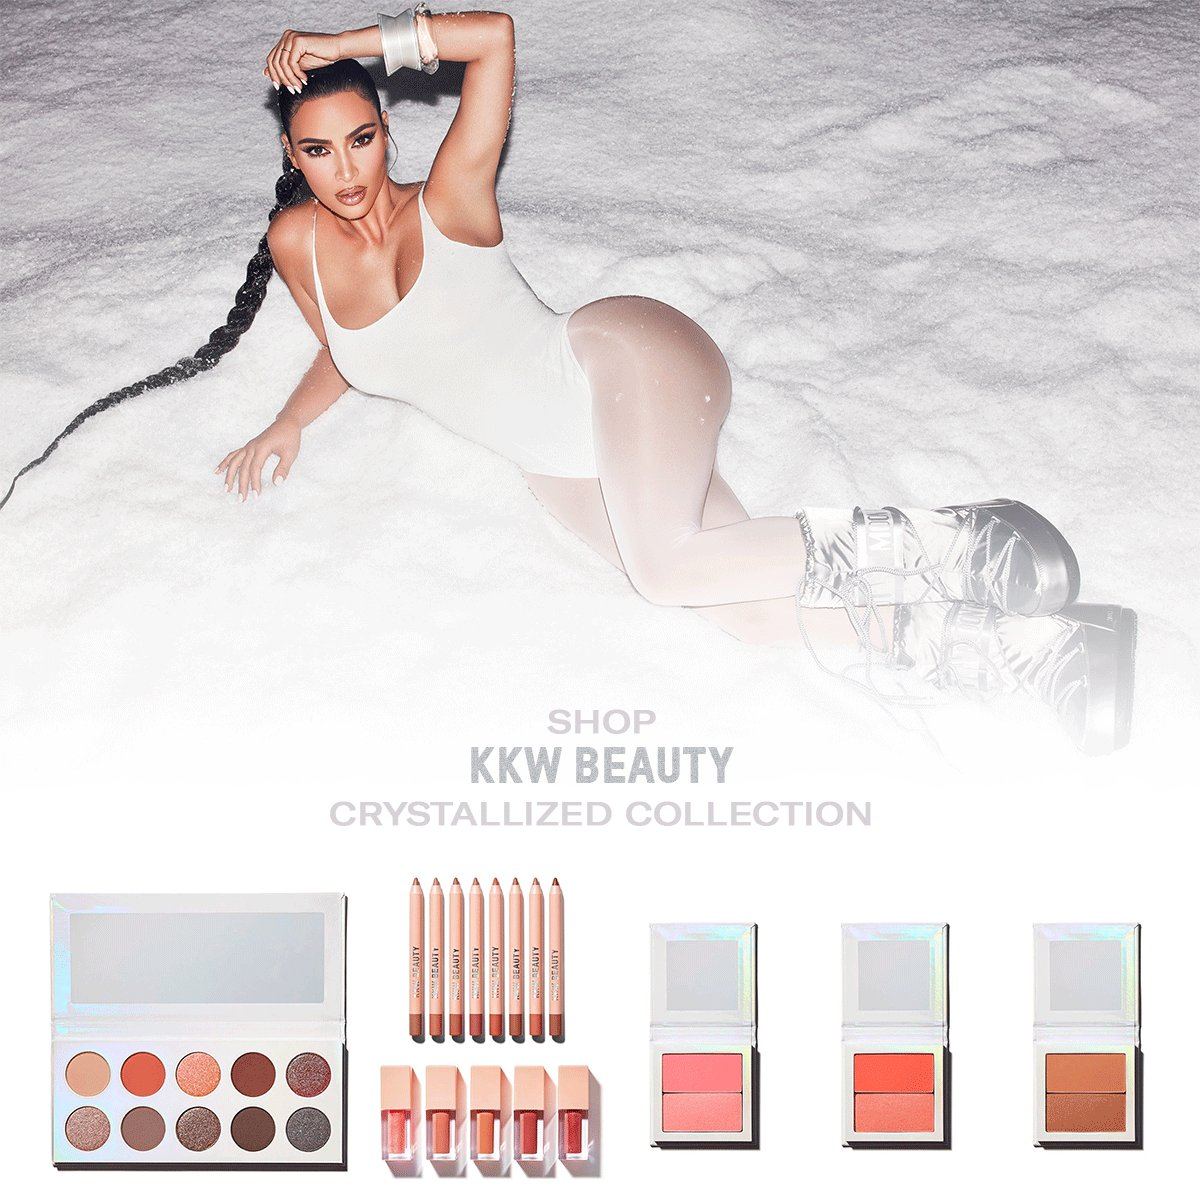 Replying to @KKWMAFIA: Shop @KKWBEAUTY Crystallized Collection now only at